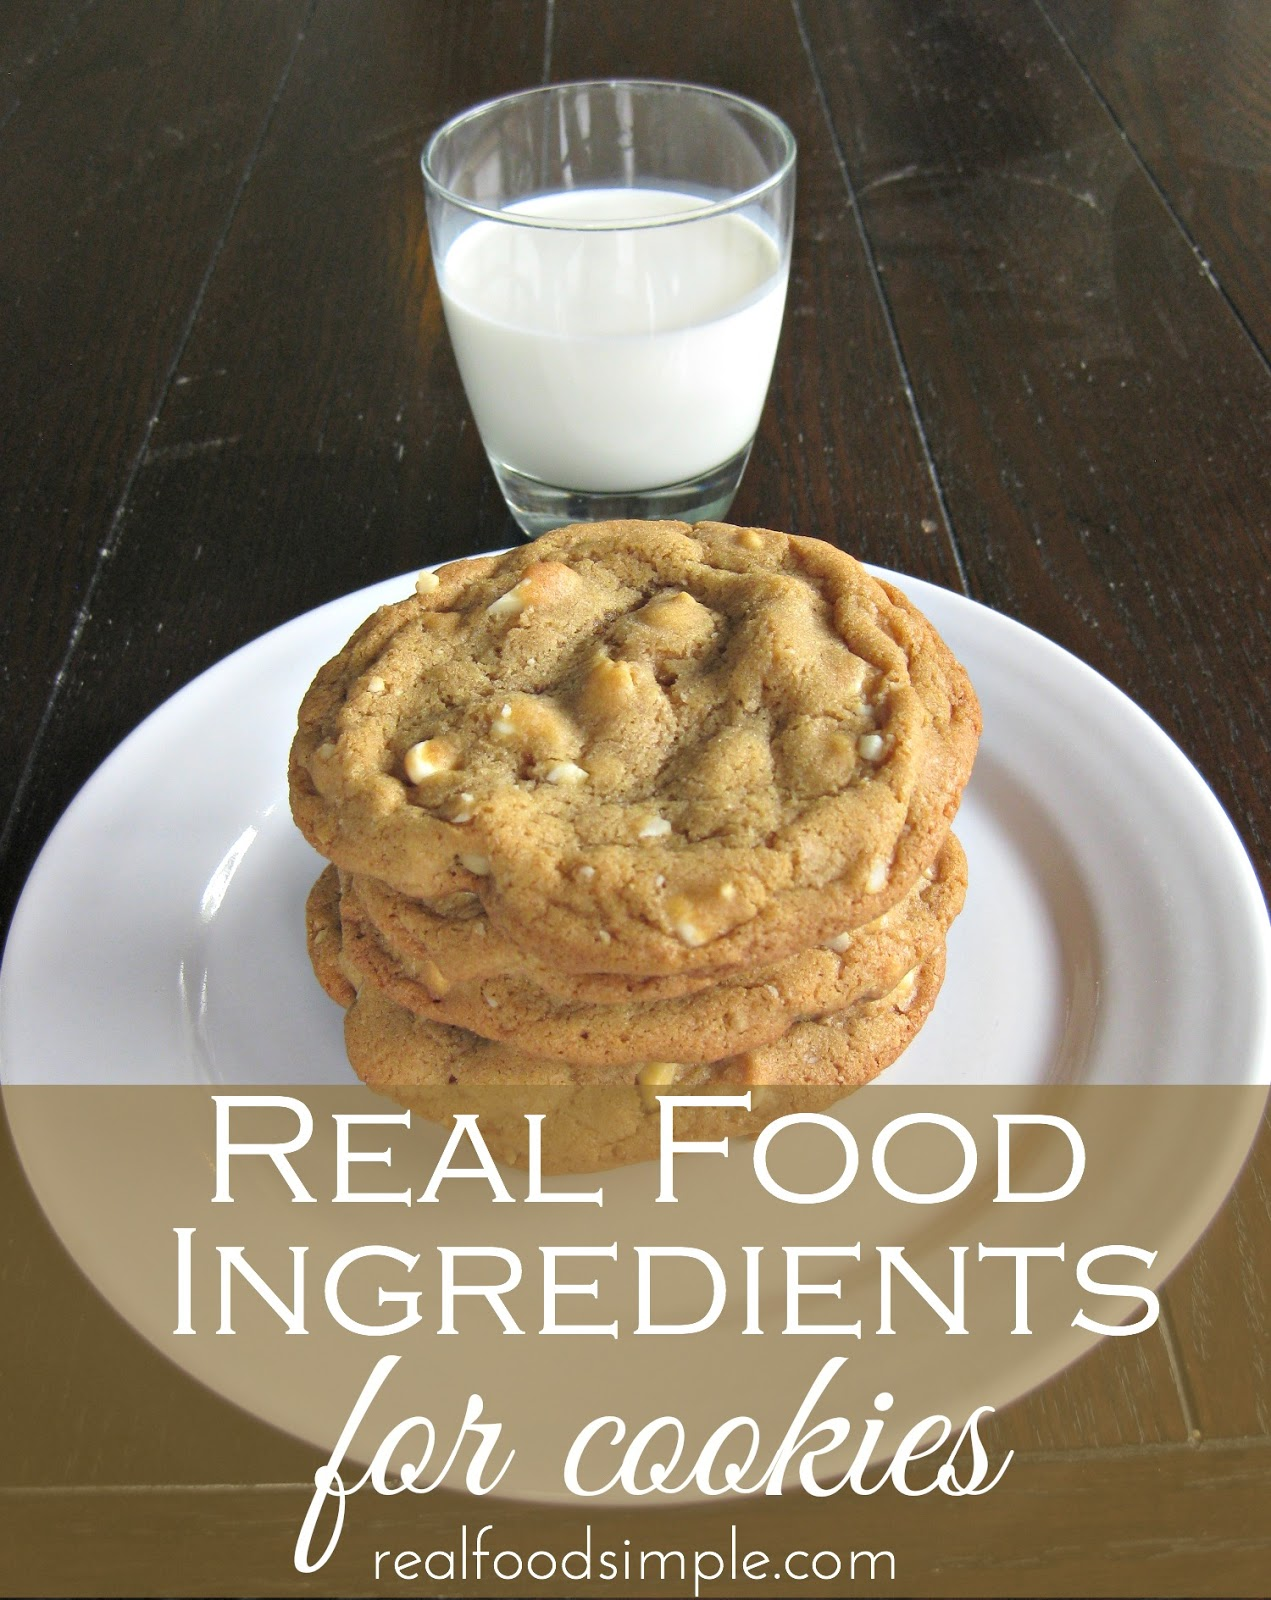 real food ingredients for cookies | realfoodsimple.com